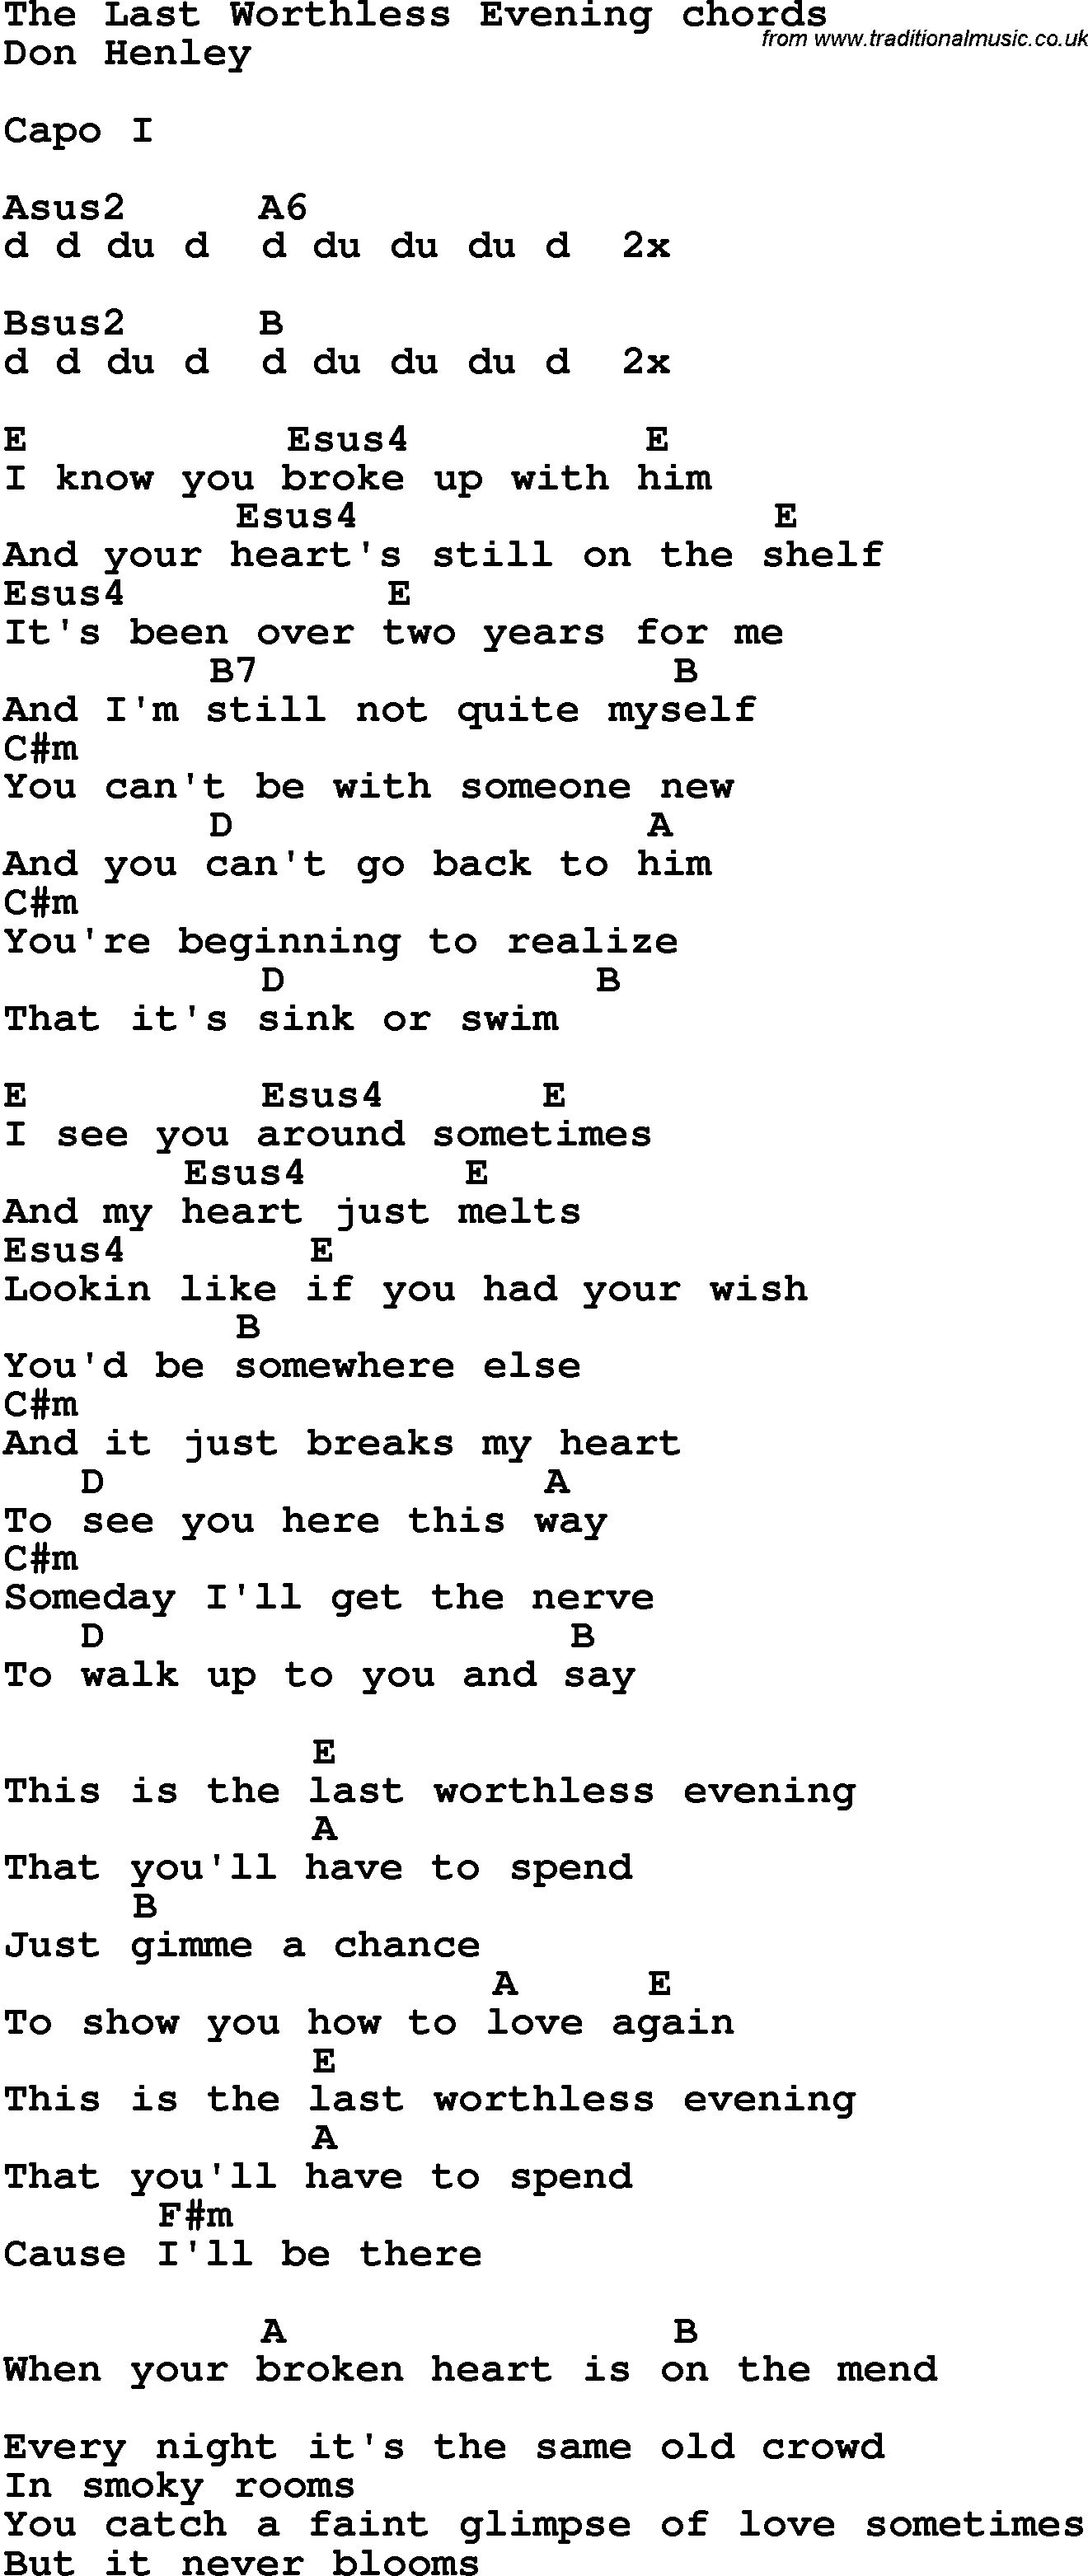 Song Lyrics With Guitar Chords For The Last Worthless Evening